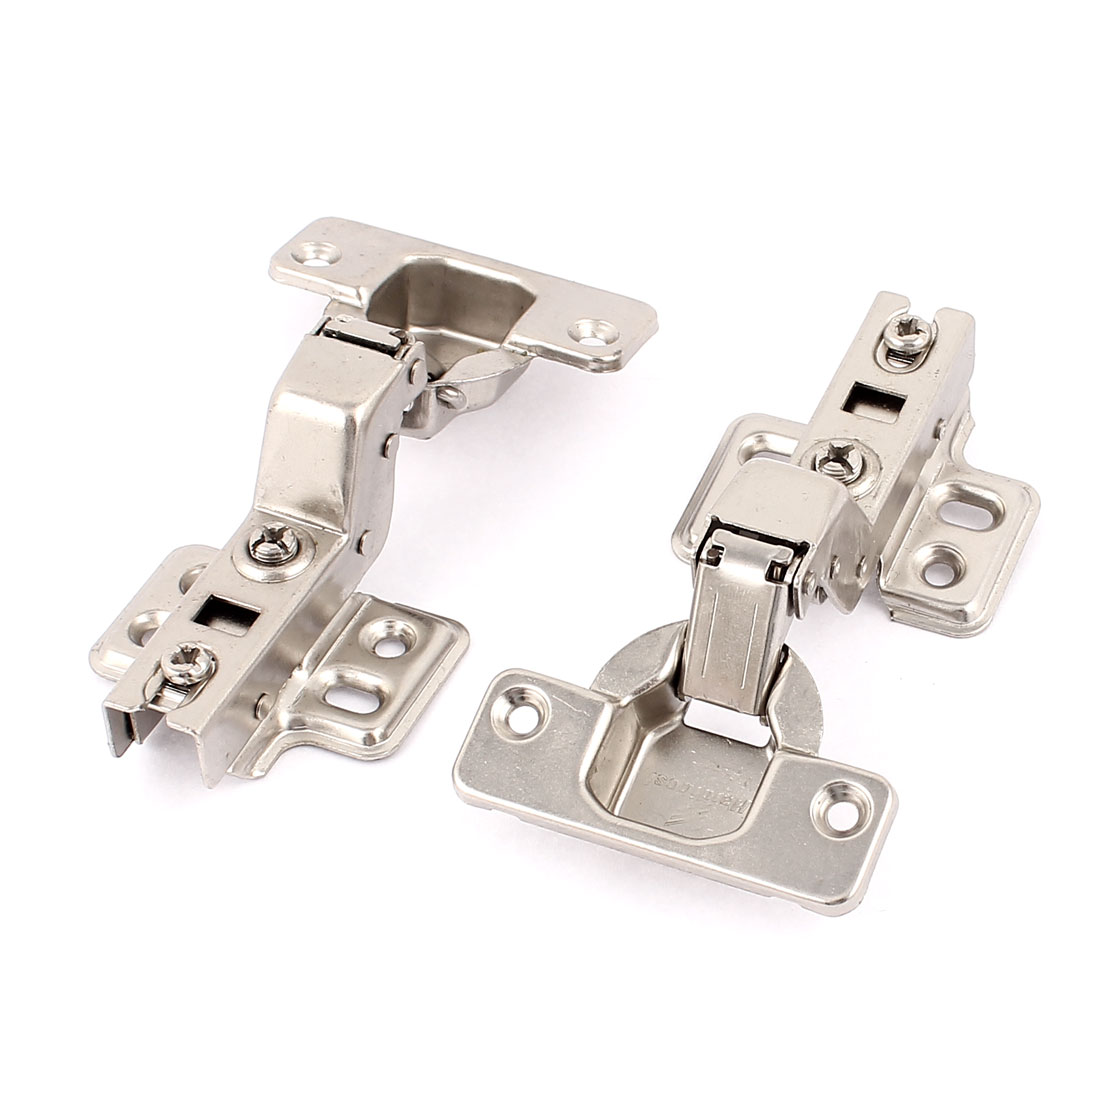 2 Pcs Furniture Hardware Buffer Metal Concealed Cabinet Hinge